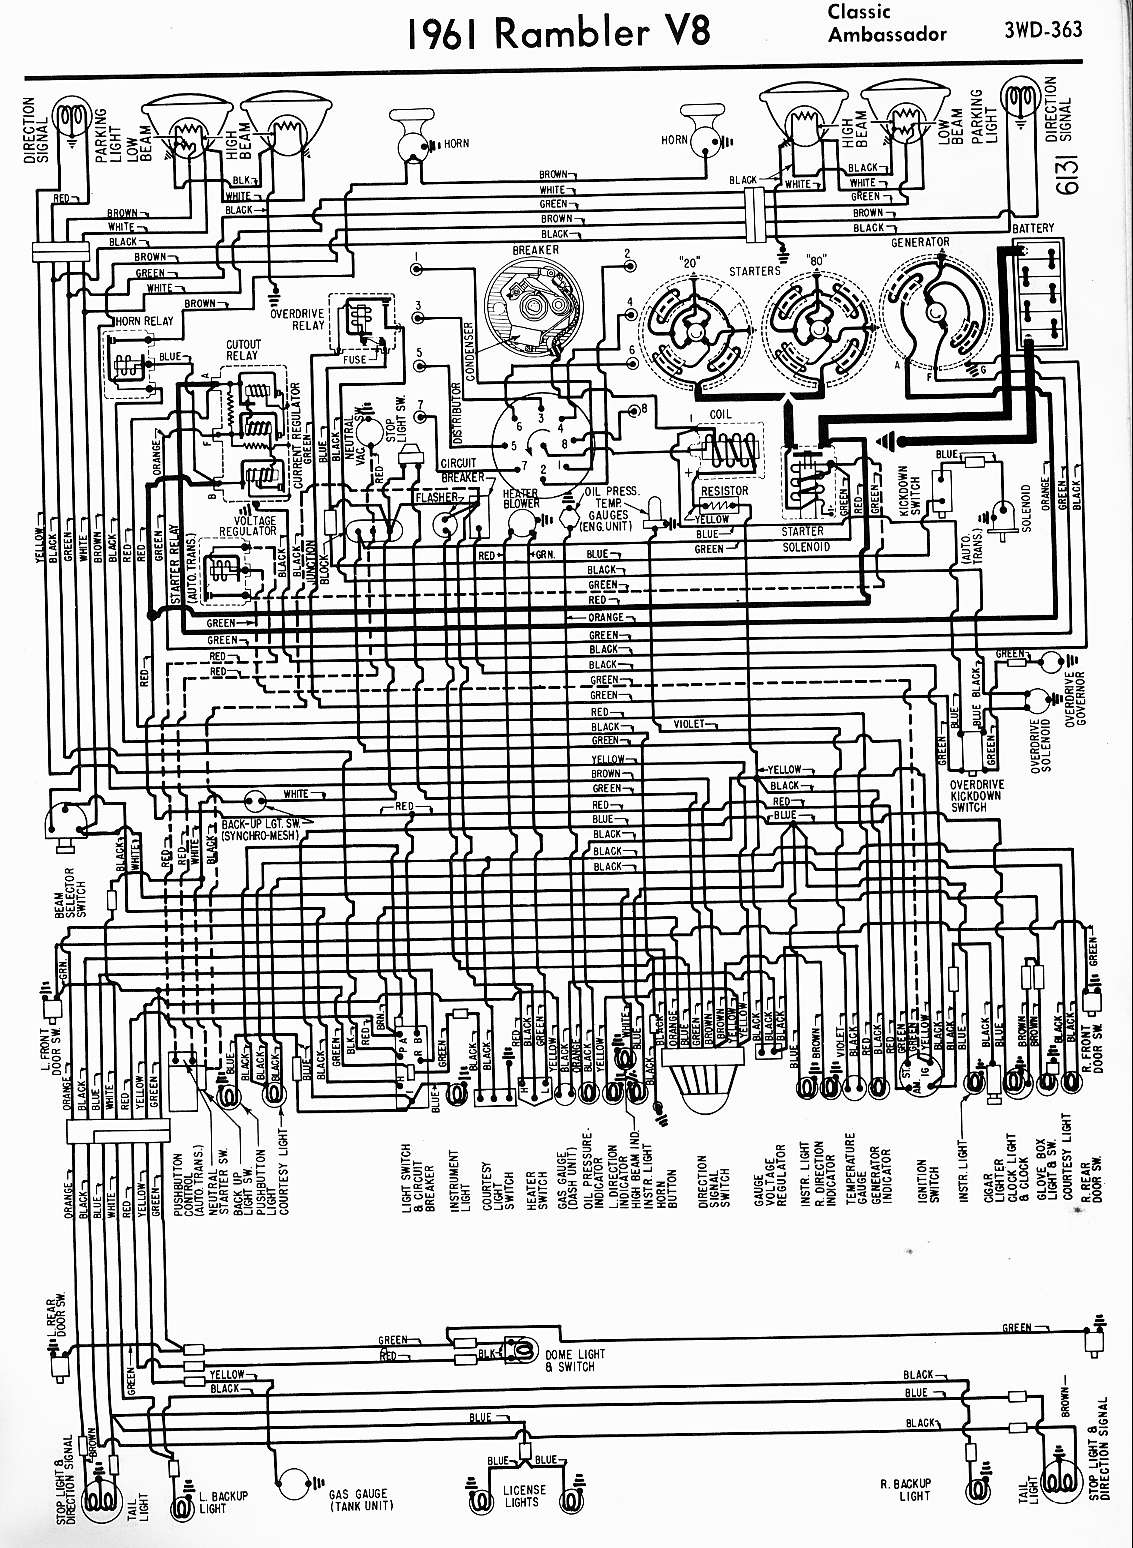 MWire5765 363 rambler wiring diagrams the old car manual project 1964 rambler fuse box diagram at suagrazia.org